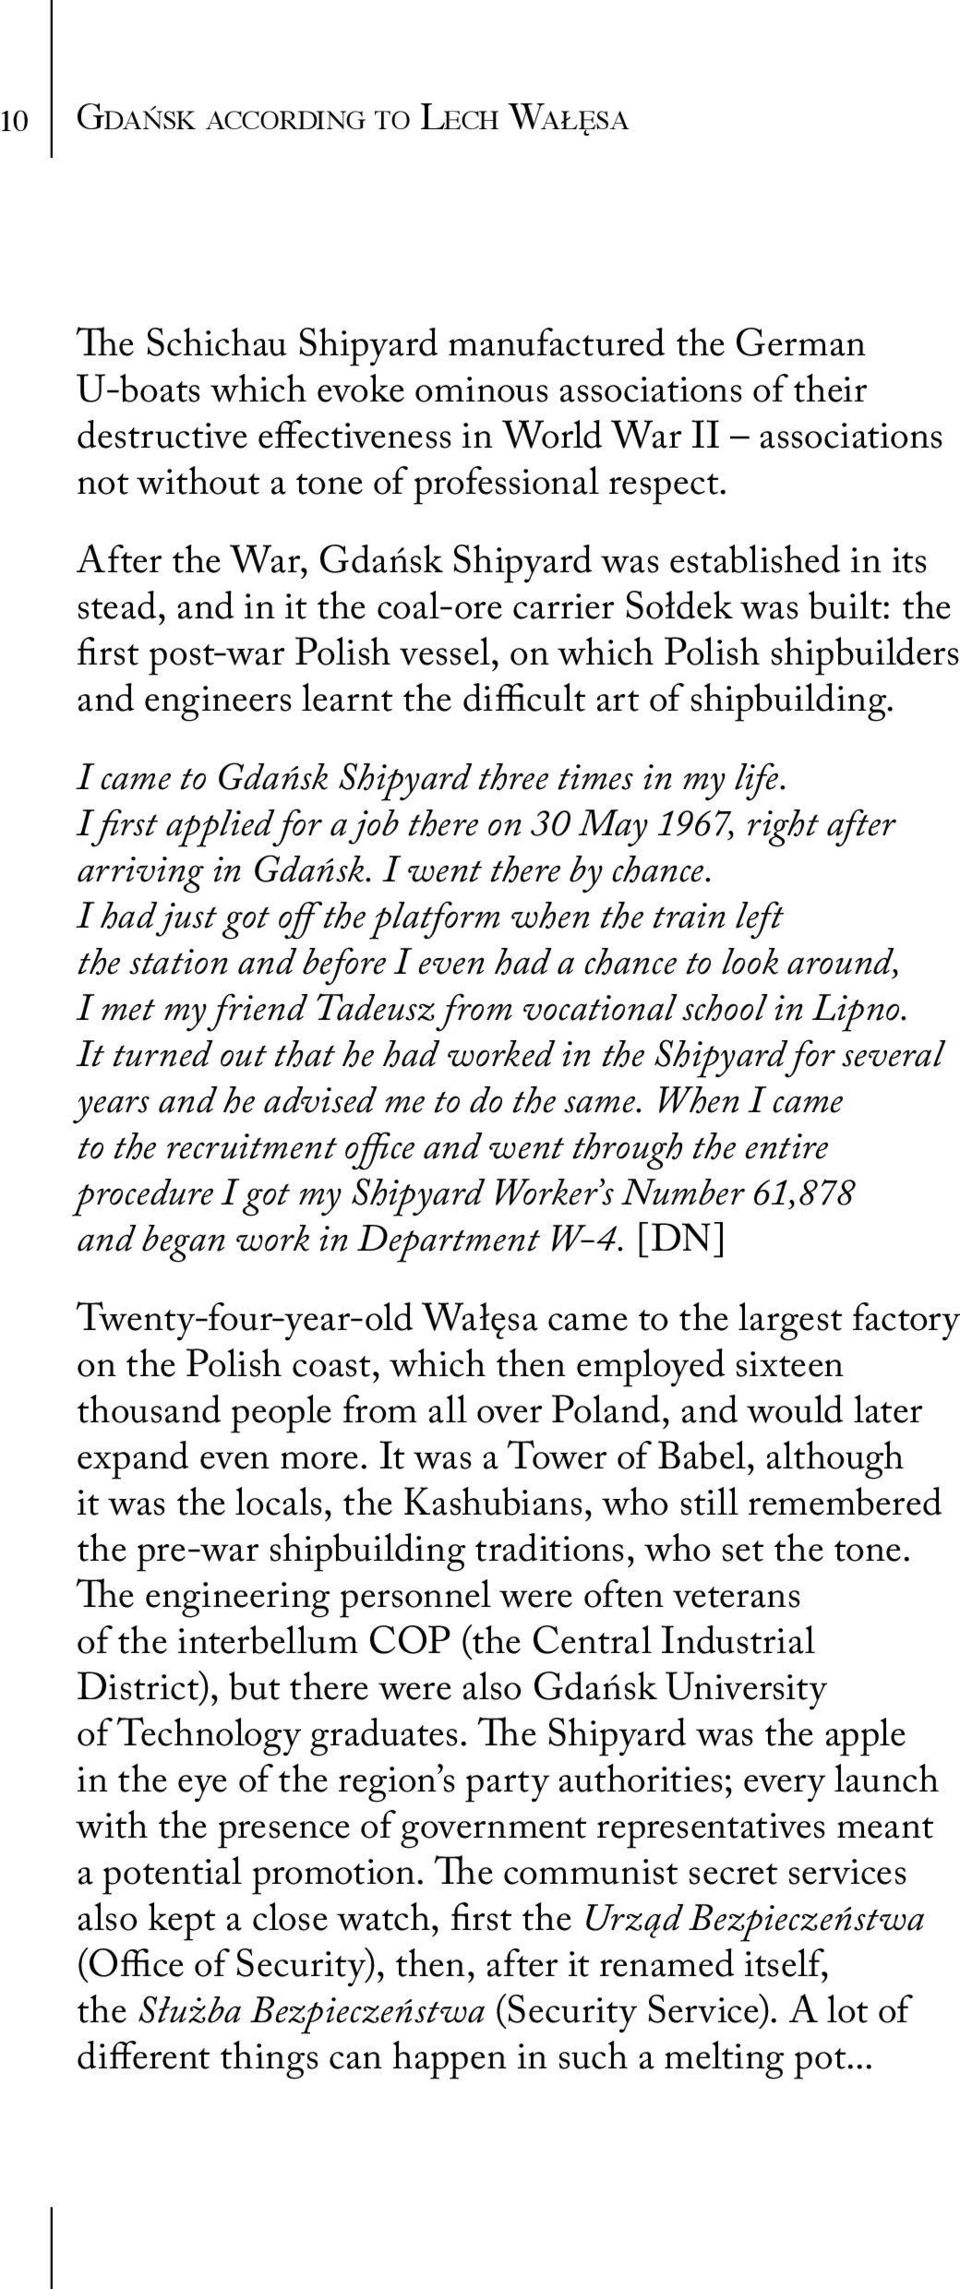 After the War, Gdańsk Shipyard was established in its stead, and in it the coal-ore carrier Sołdek was built: the first post-war Polish vessel, on which Polish shipbuilders and engineers learnt the